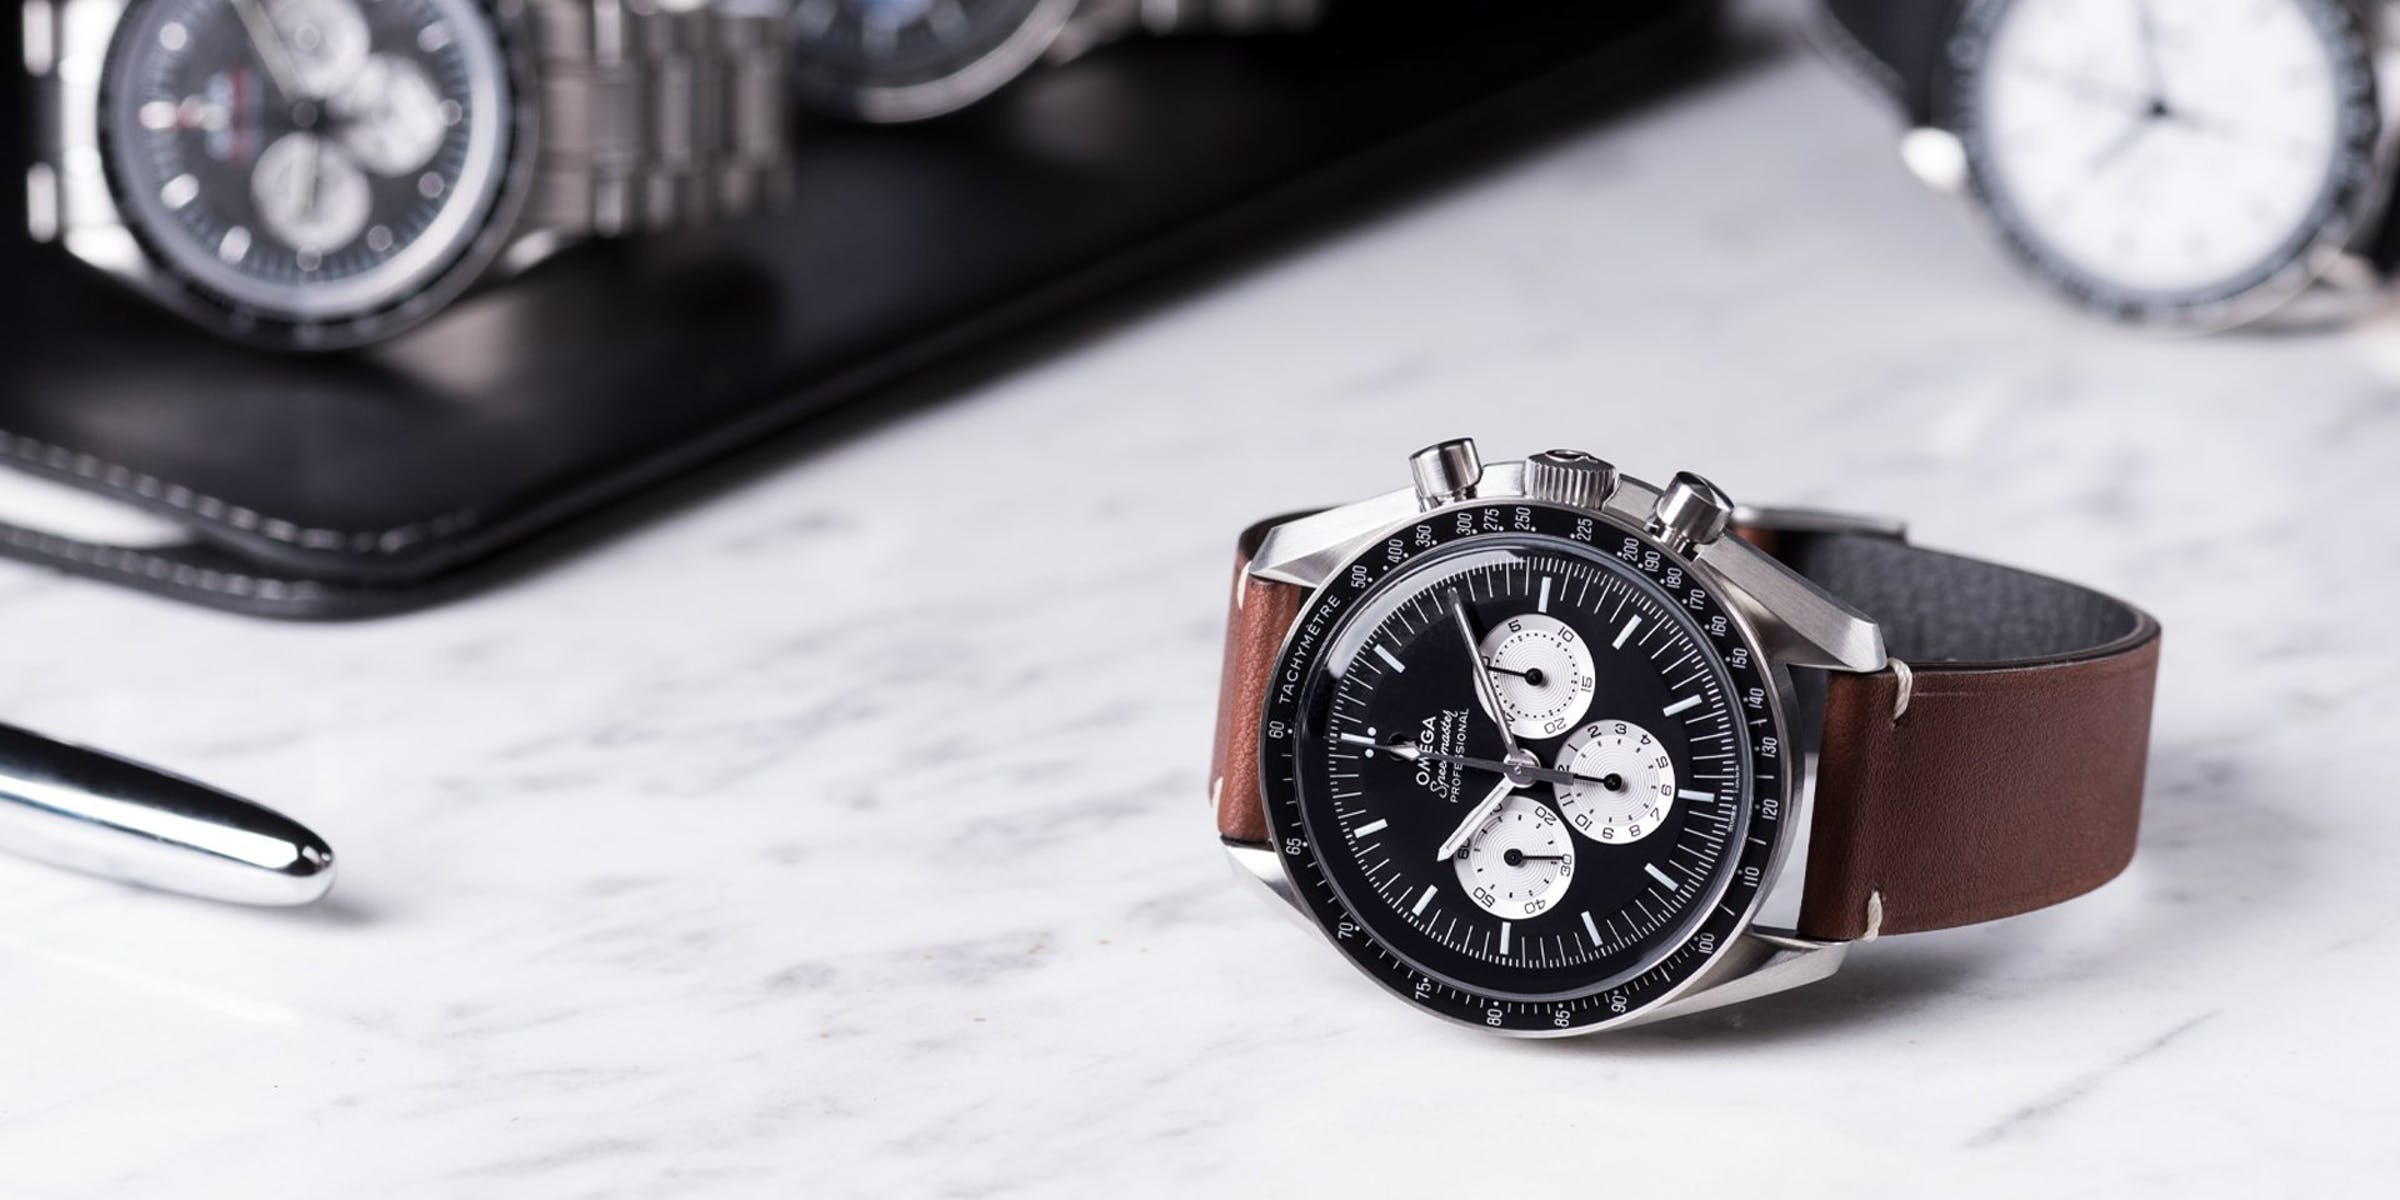 5 Watches to Keep an Eye on in 2021